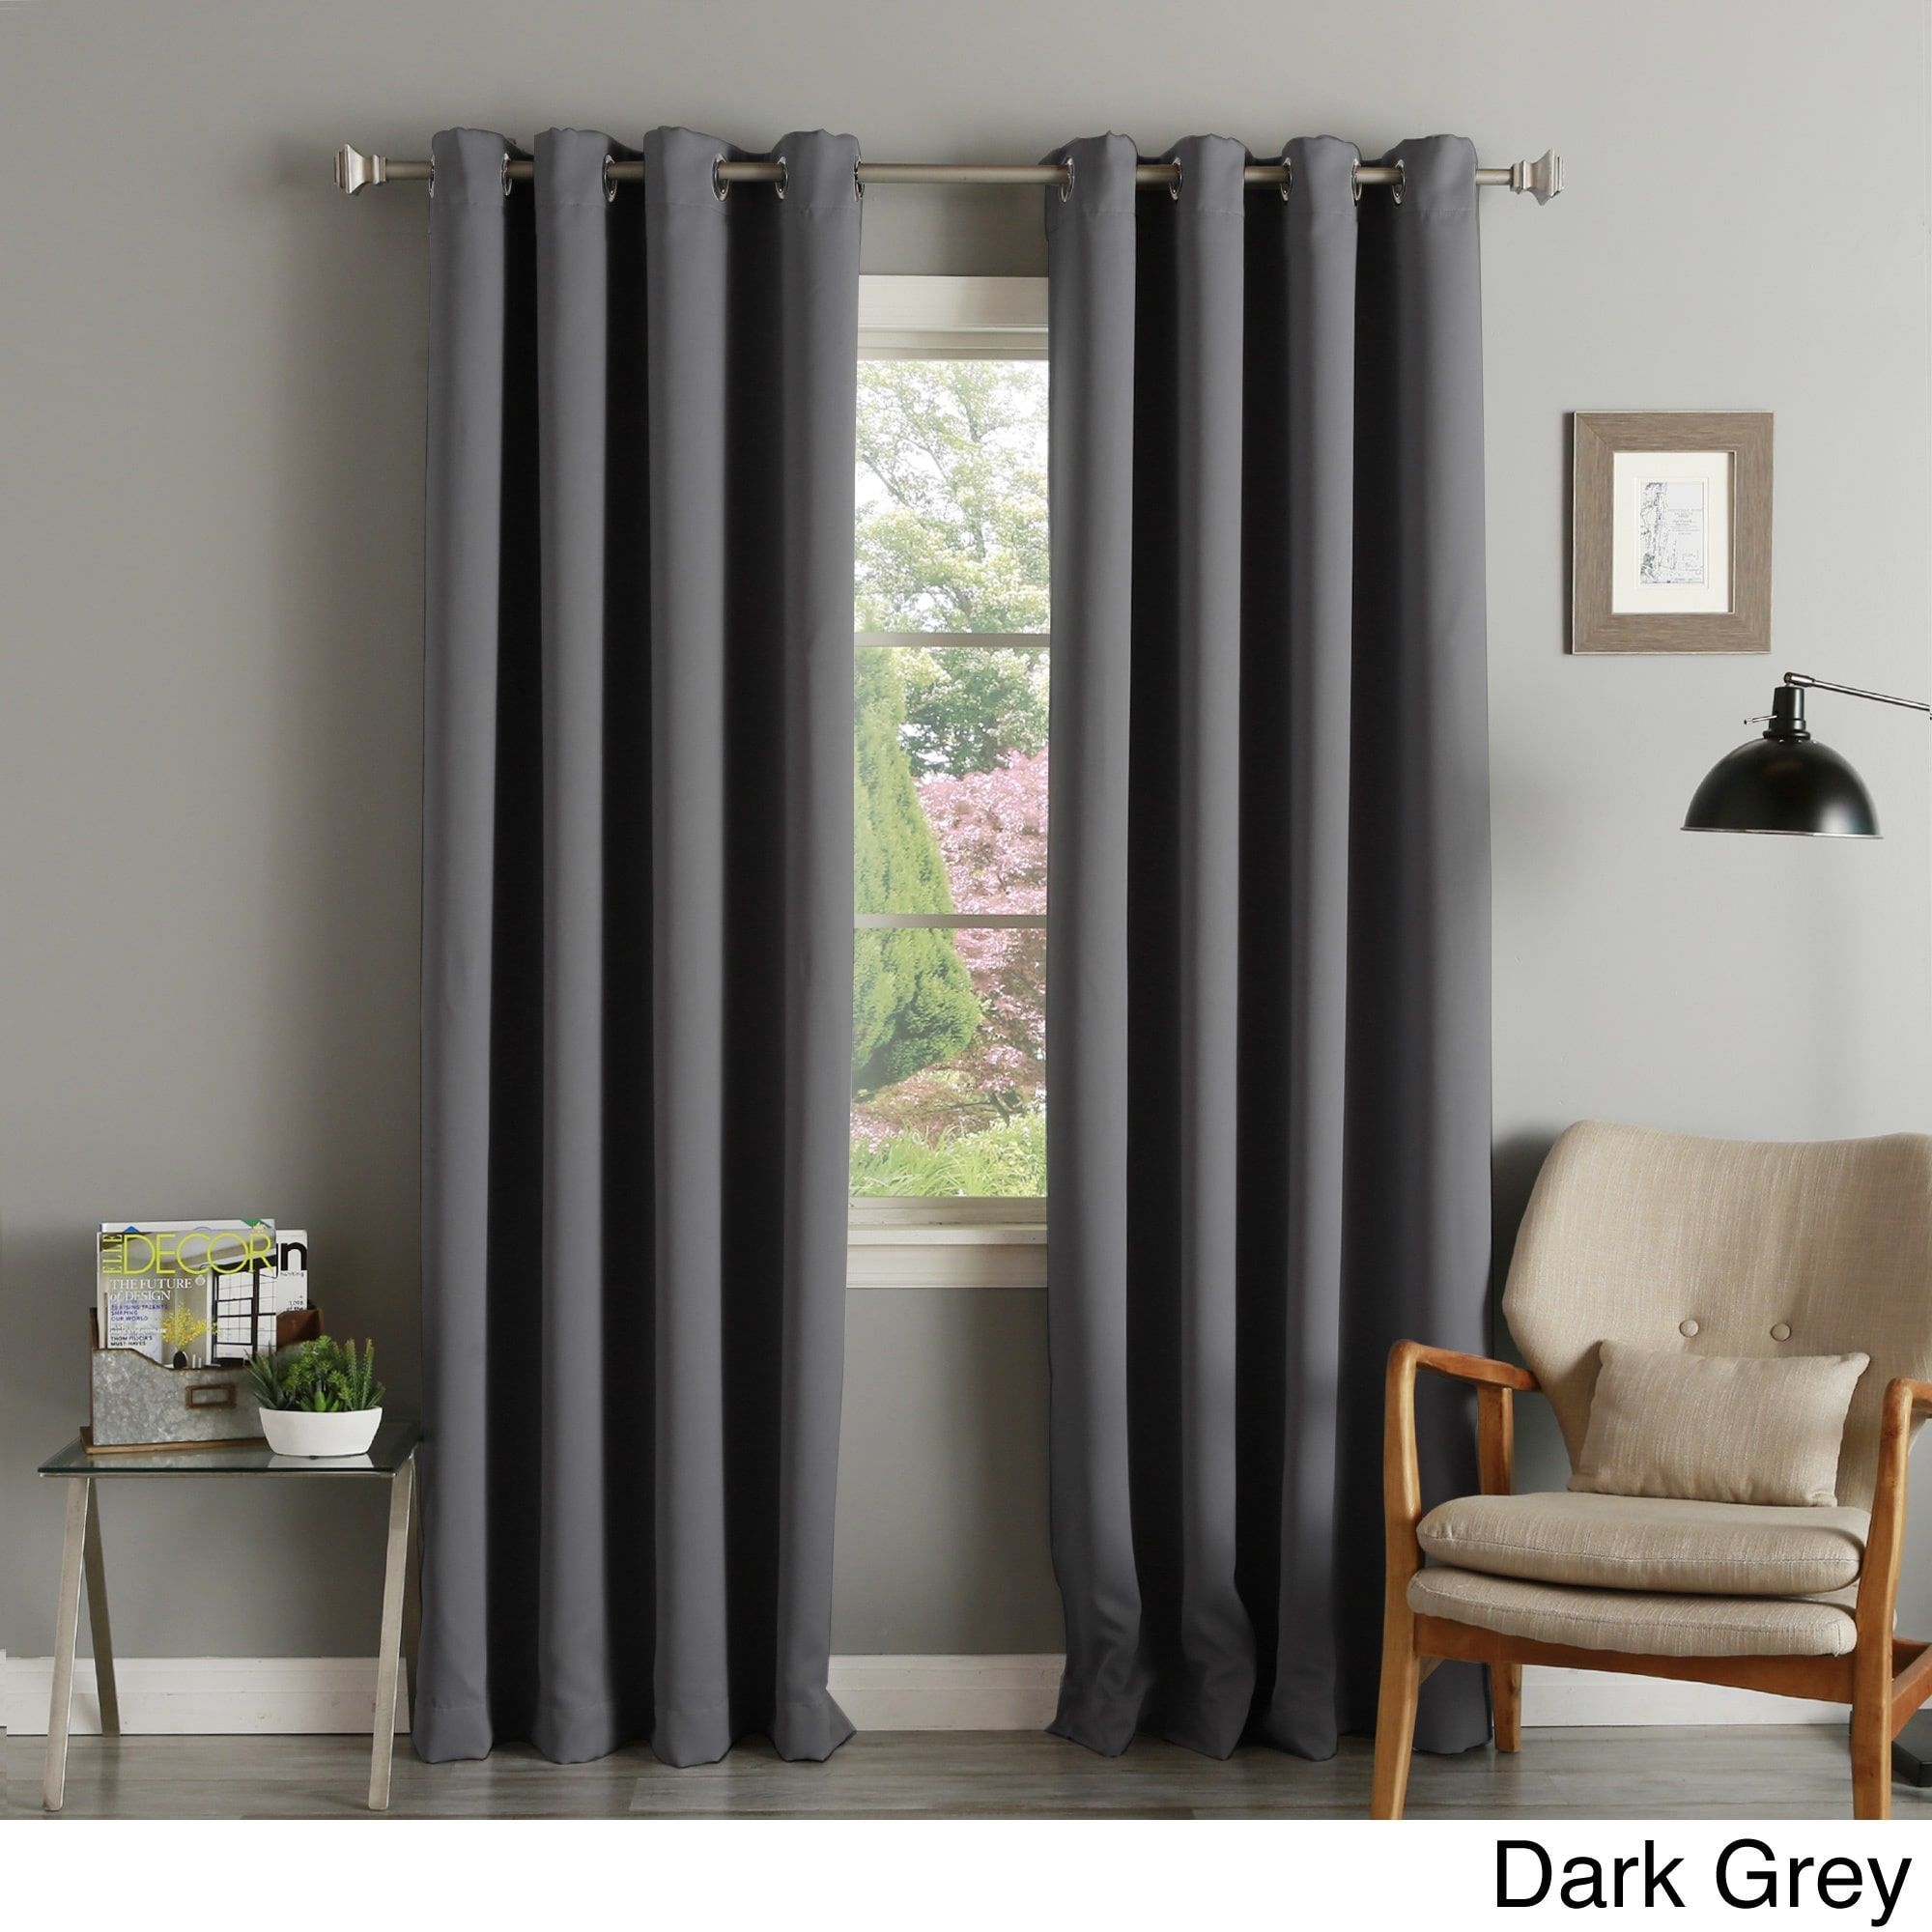 carnation hailey curtain wide inc halley long curtains home fabric shower x sc products extra in large fashions